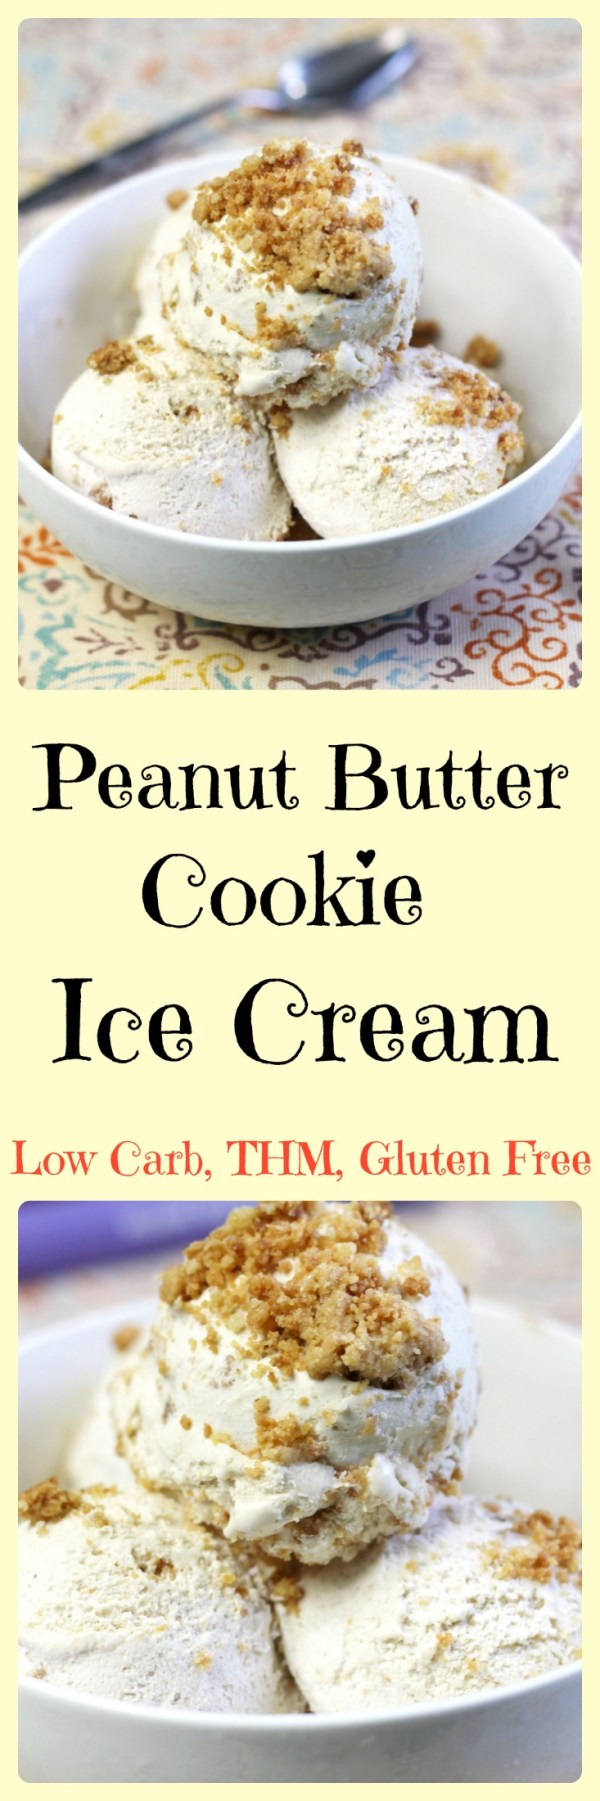 Peanut Butter Ice Cream || Low Carb, THM, Gluten Free, Sugar Free